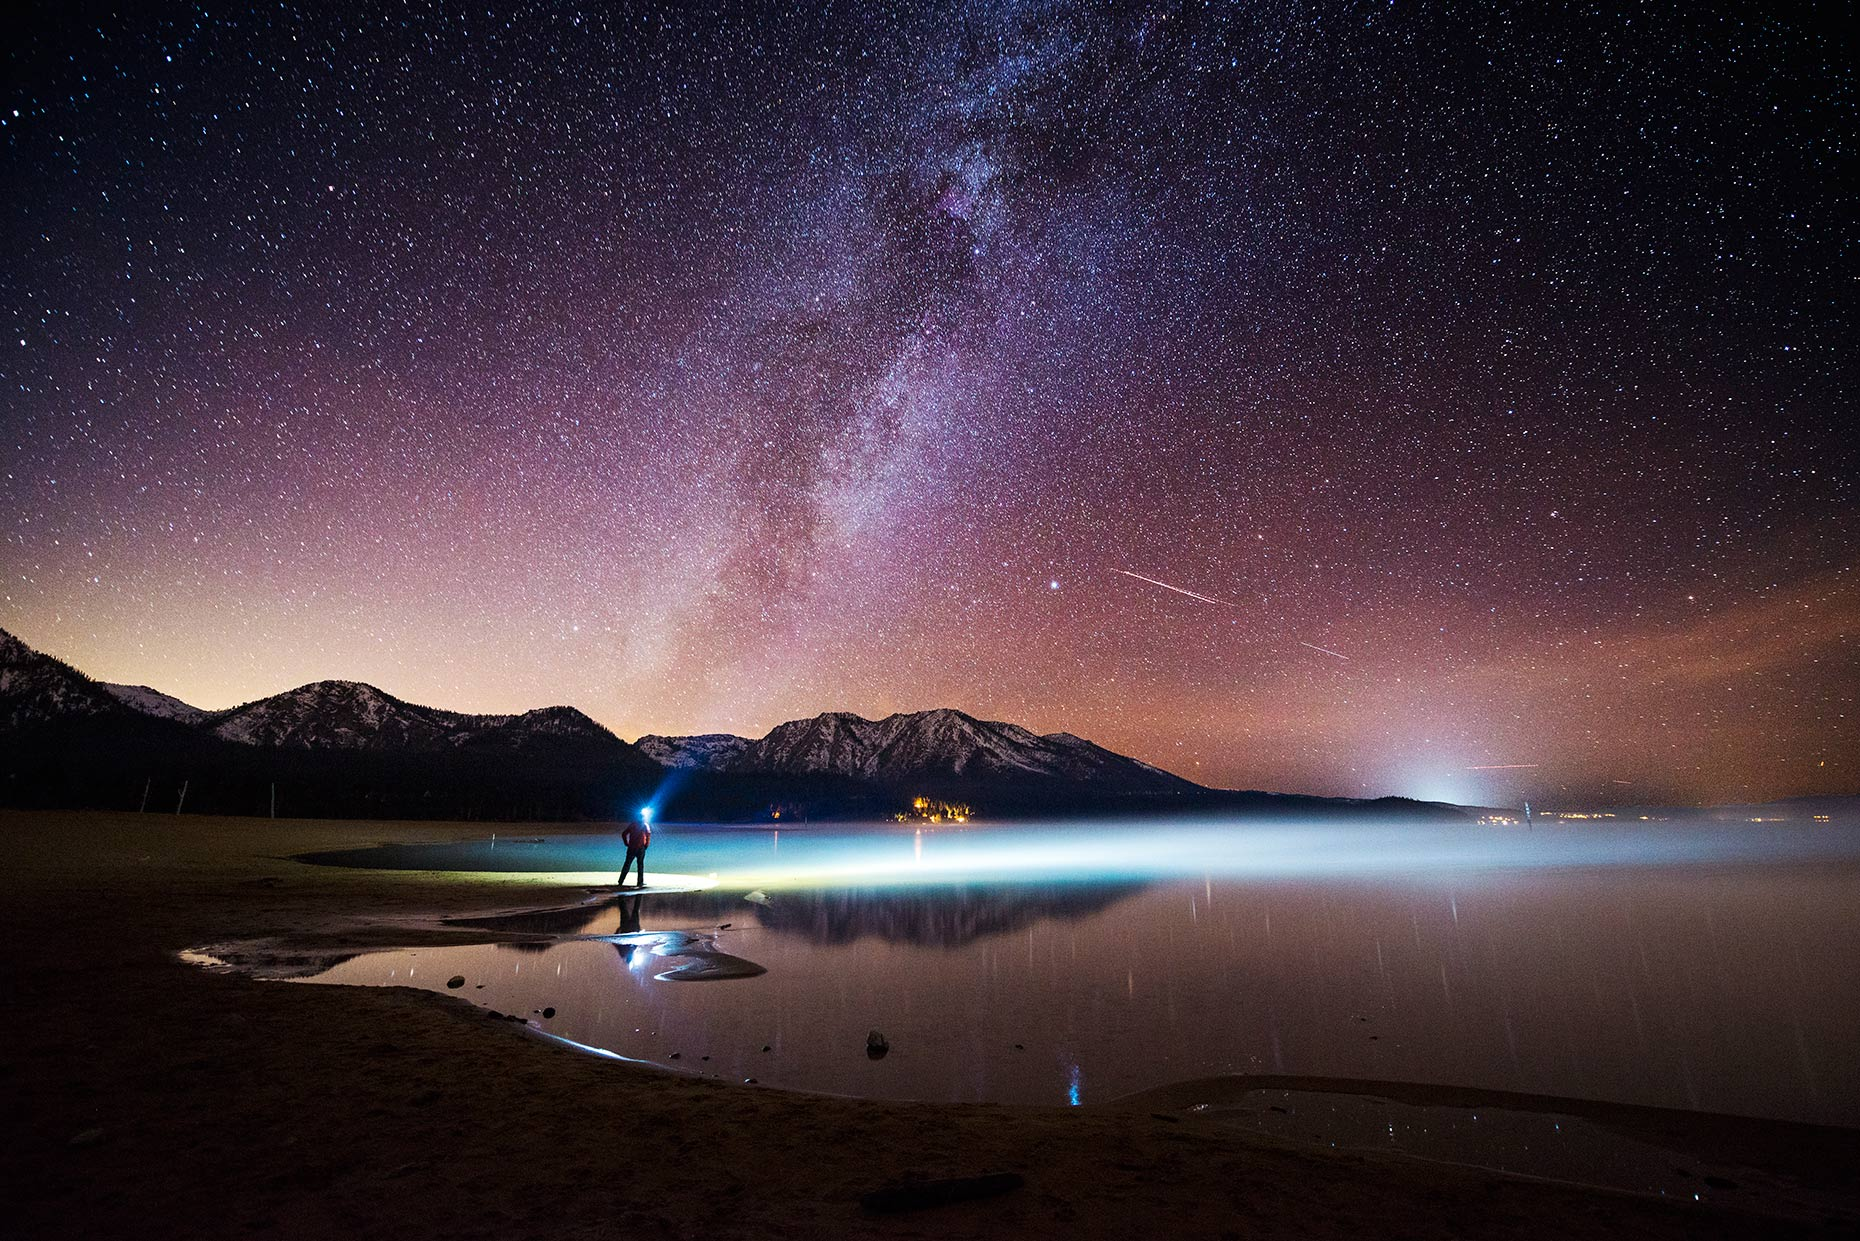 Night Sky - Headlamp Milky Way Fog In South Lake Tahoe, California